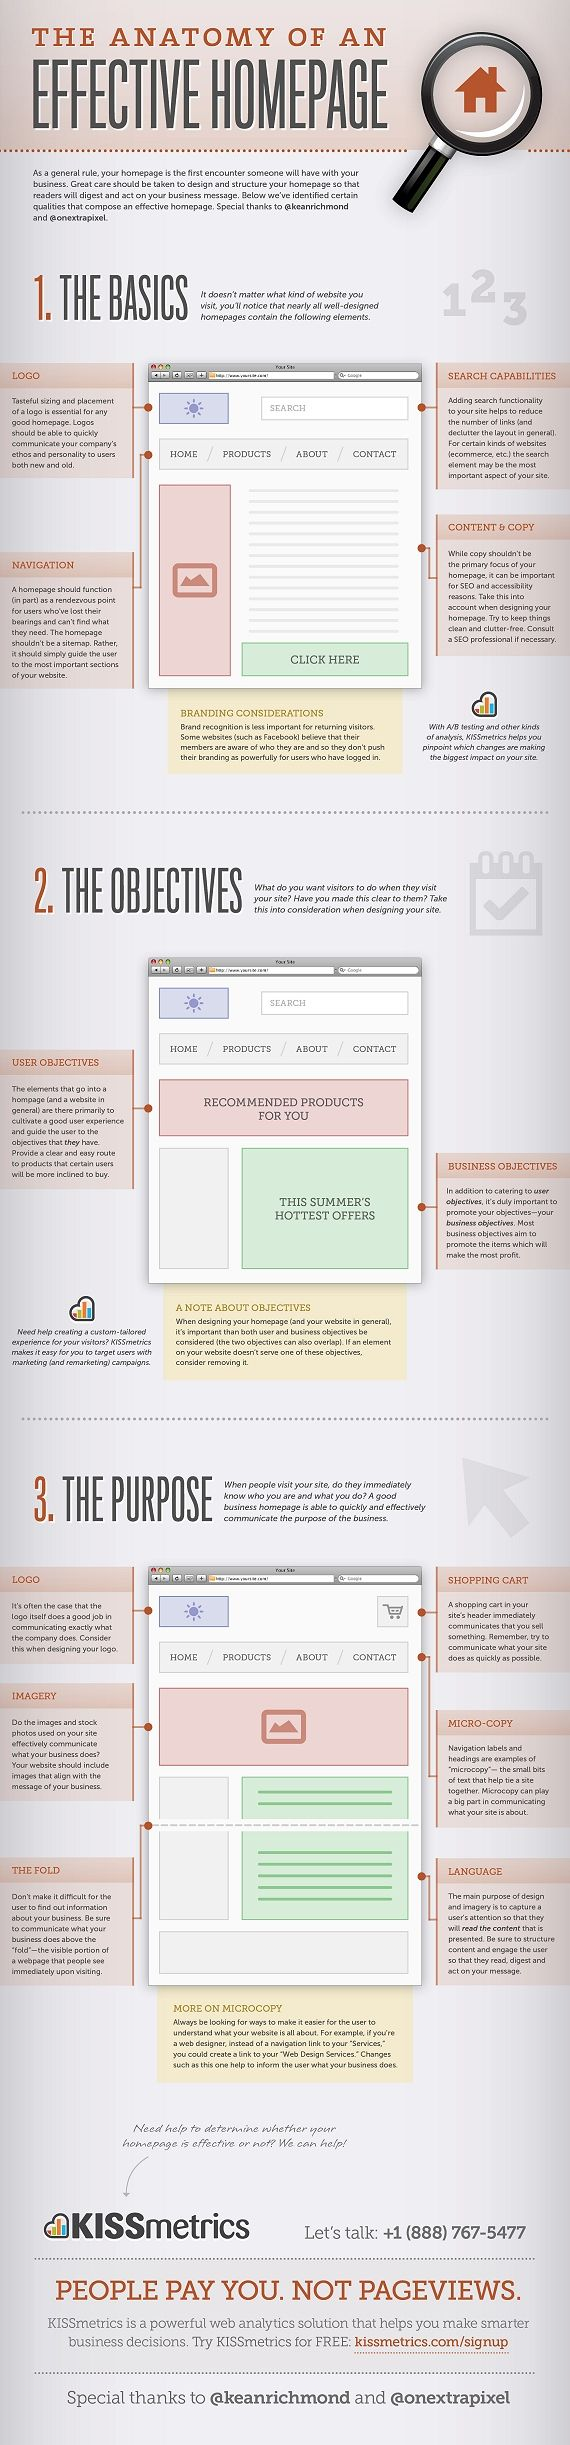 The Anatomy of an Effective Homepage (infographic): Social Network, Webdesign, Web Design, Social Media, Web Pages, Website Layout, Website Design, Infographic, Socialmedia